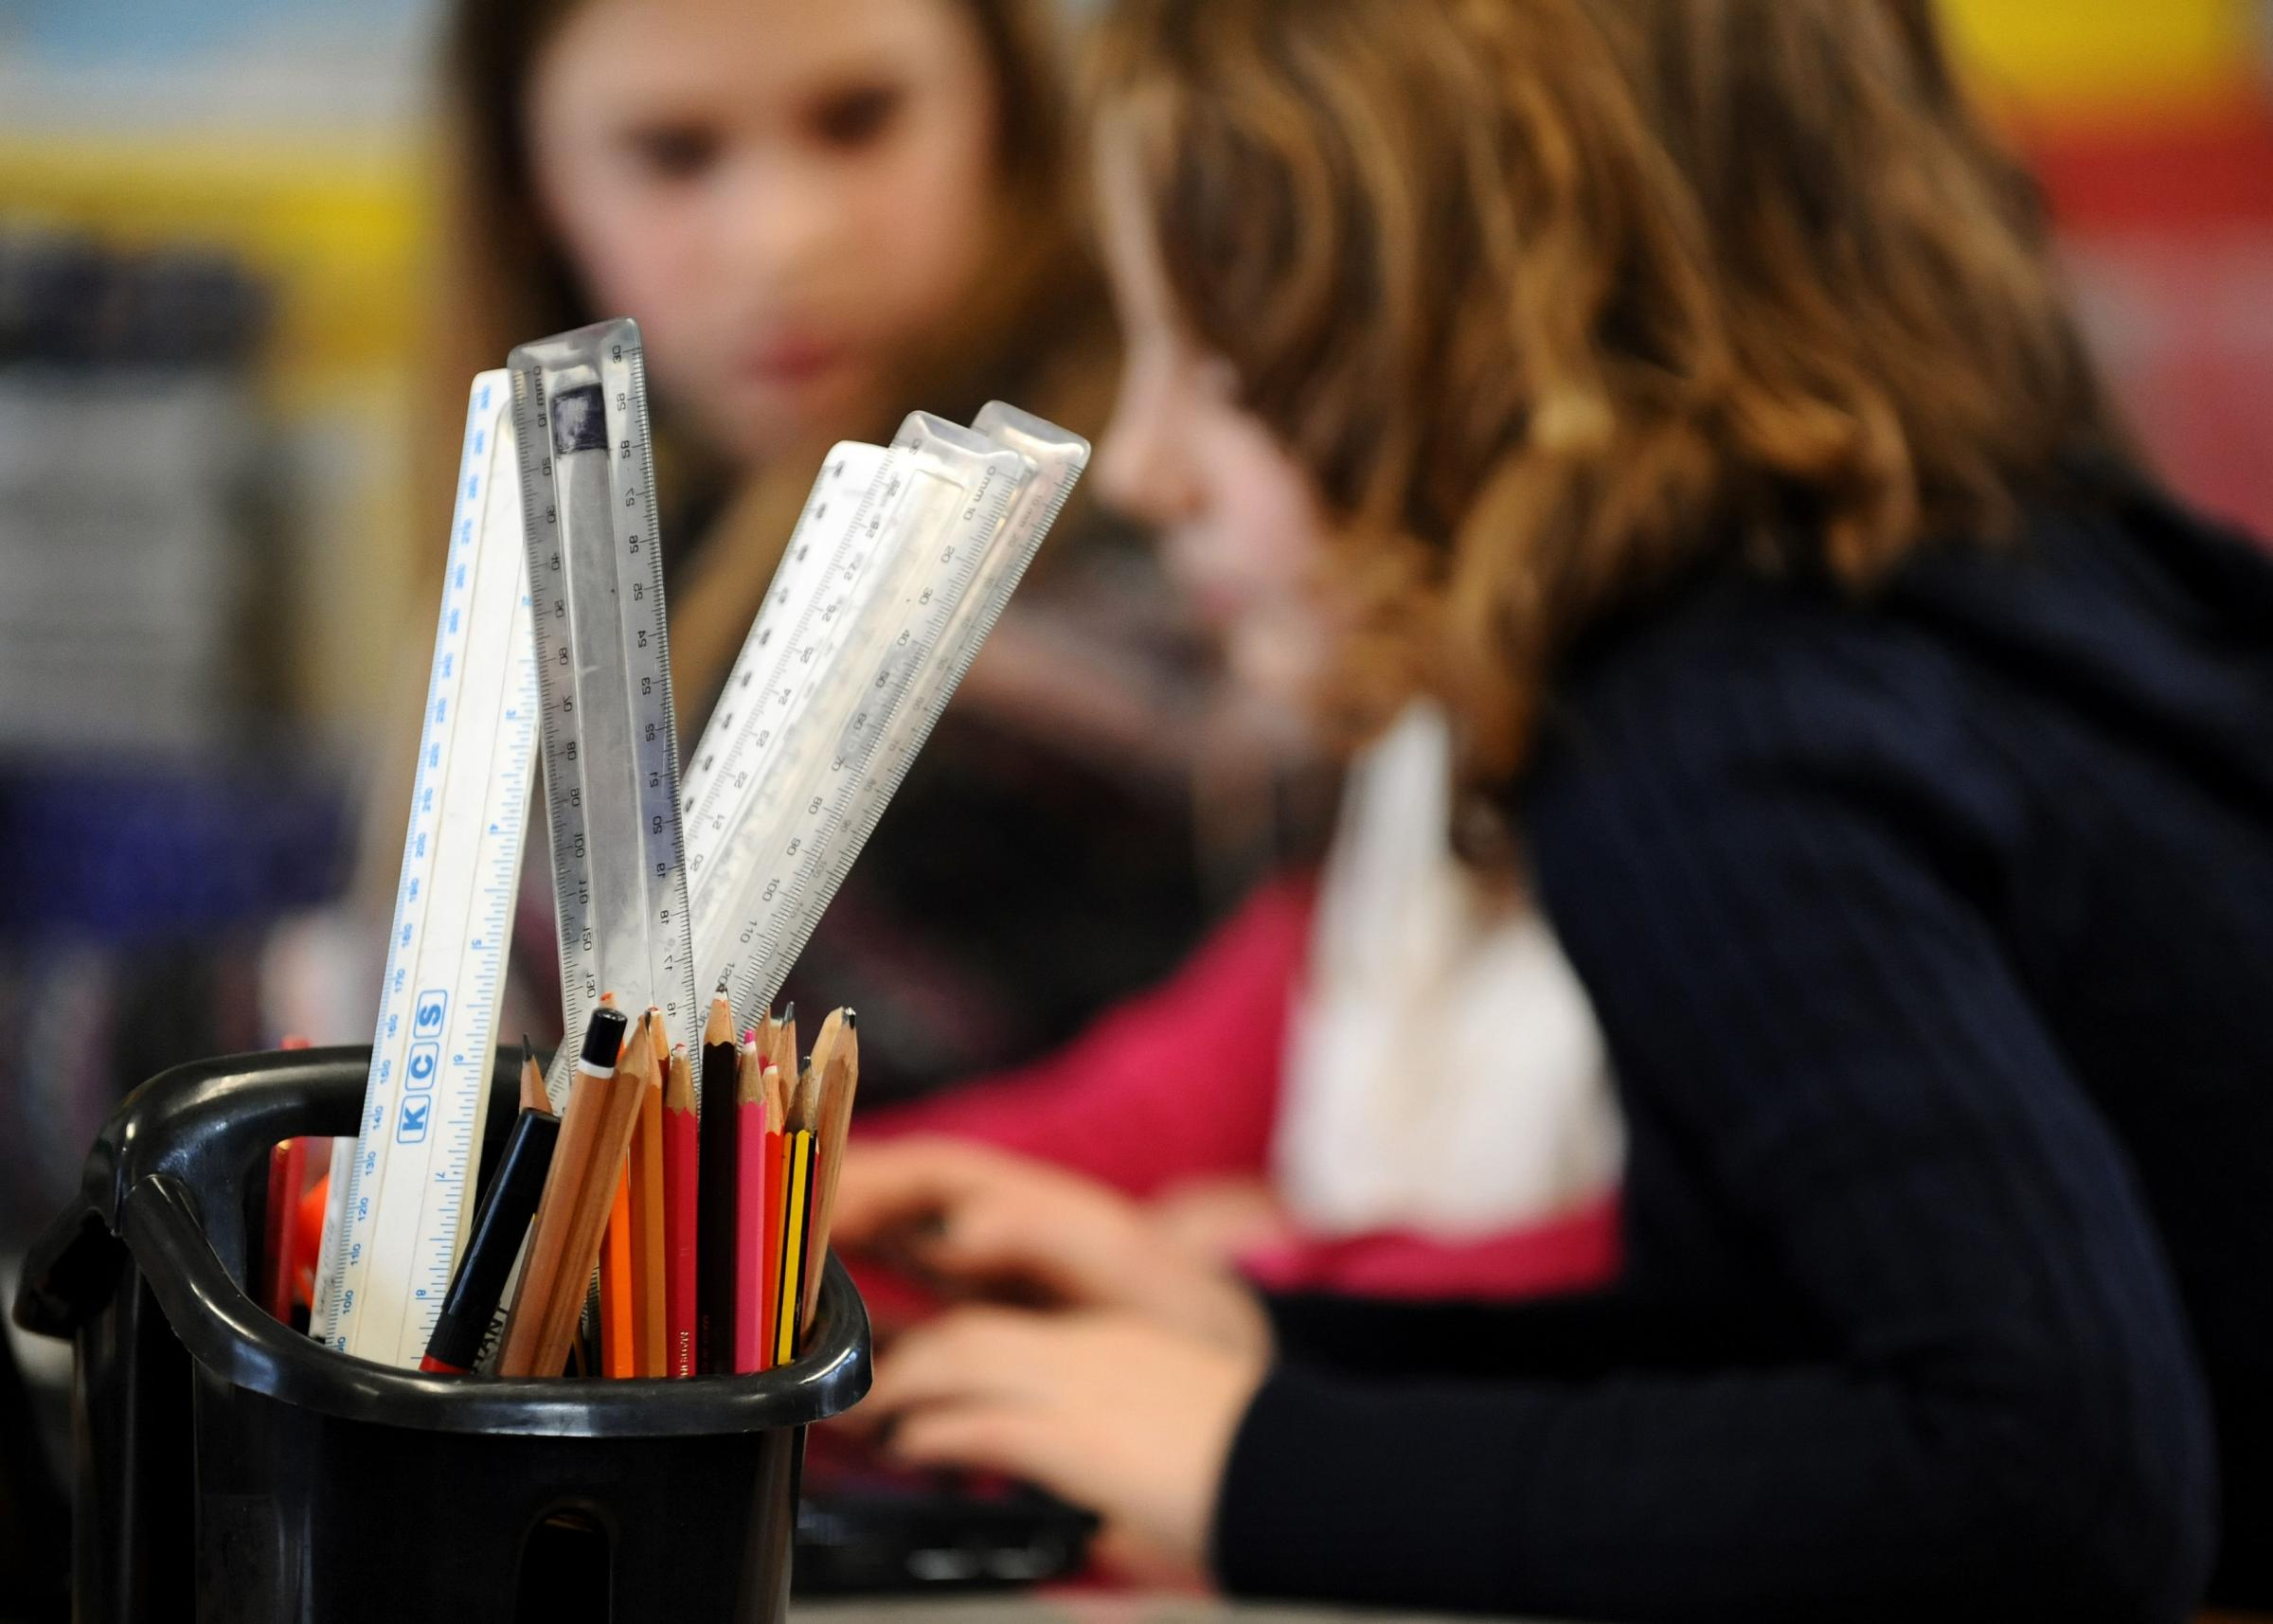 Study shows converting primary schools into academies has 'not boosted pupils' performance'